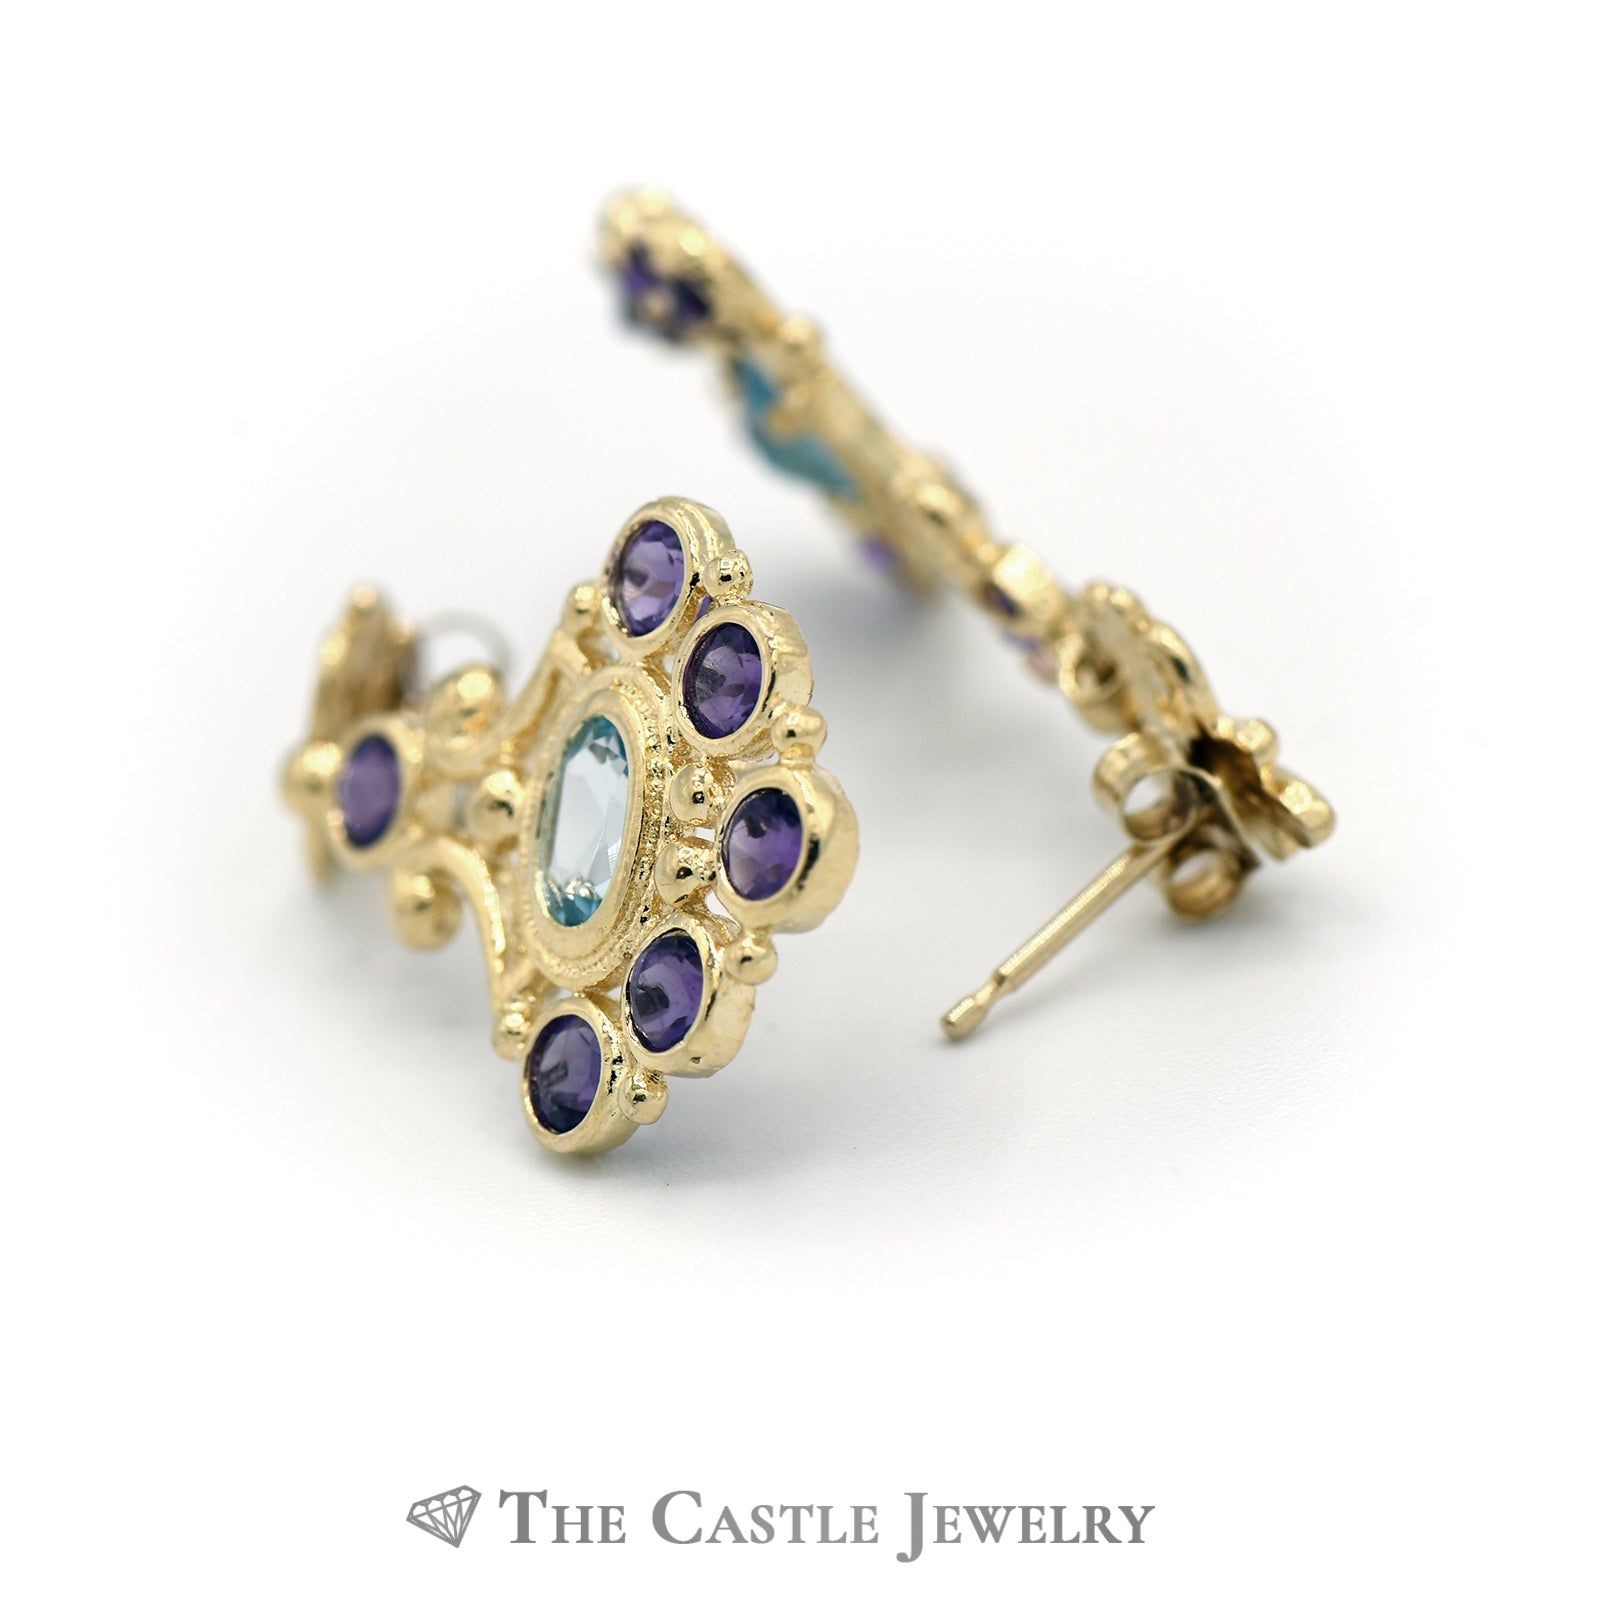 Bohemian Style Earrings in 14K Yellow Gold with Amethyst And Blue Topaz-2